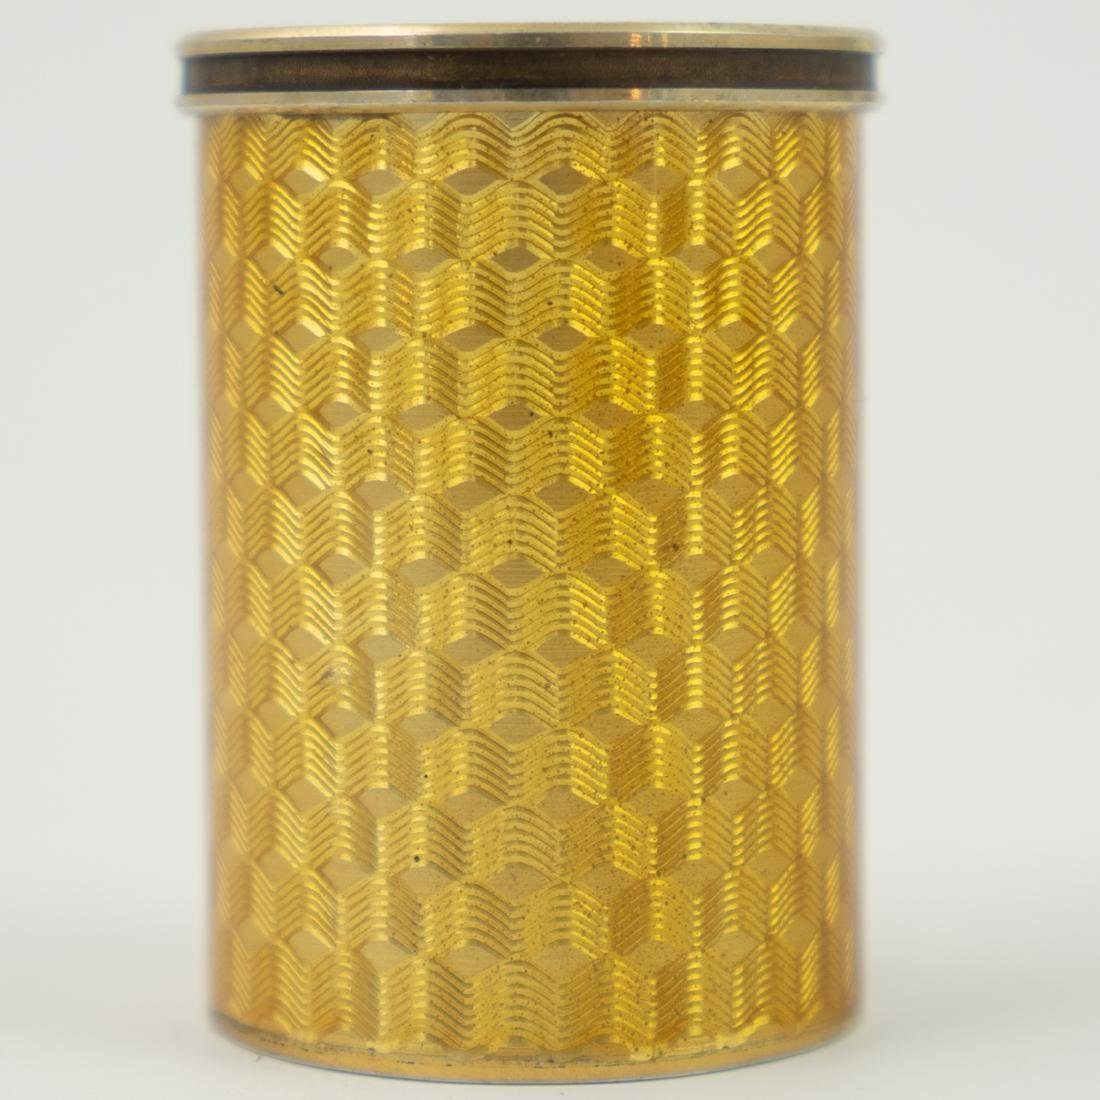 Karl Faberge Guiloche Enameled Silver Shot Glass by - 2